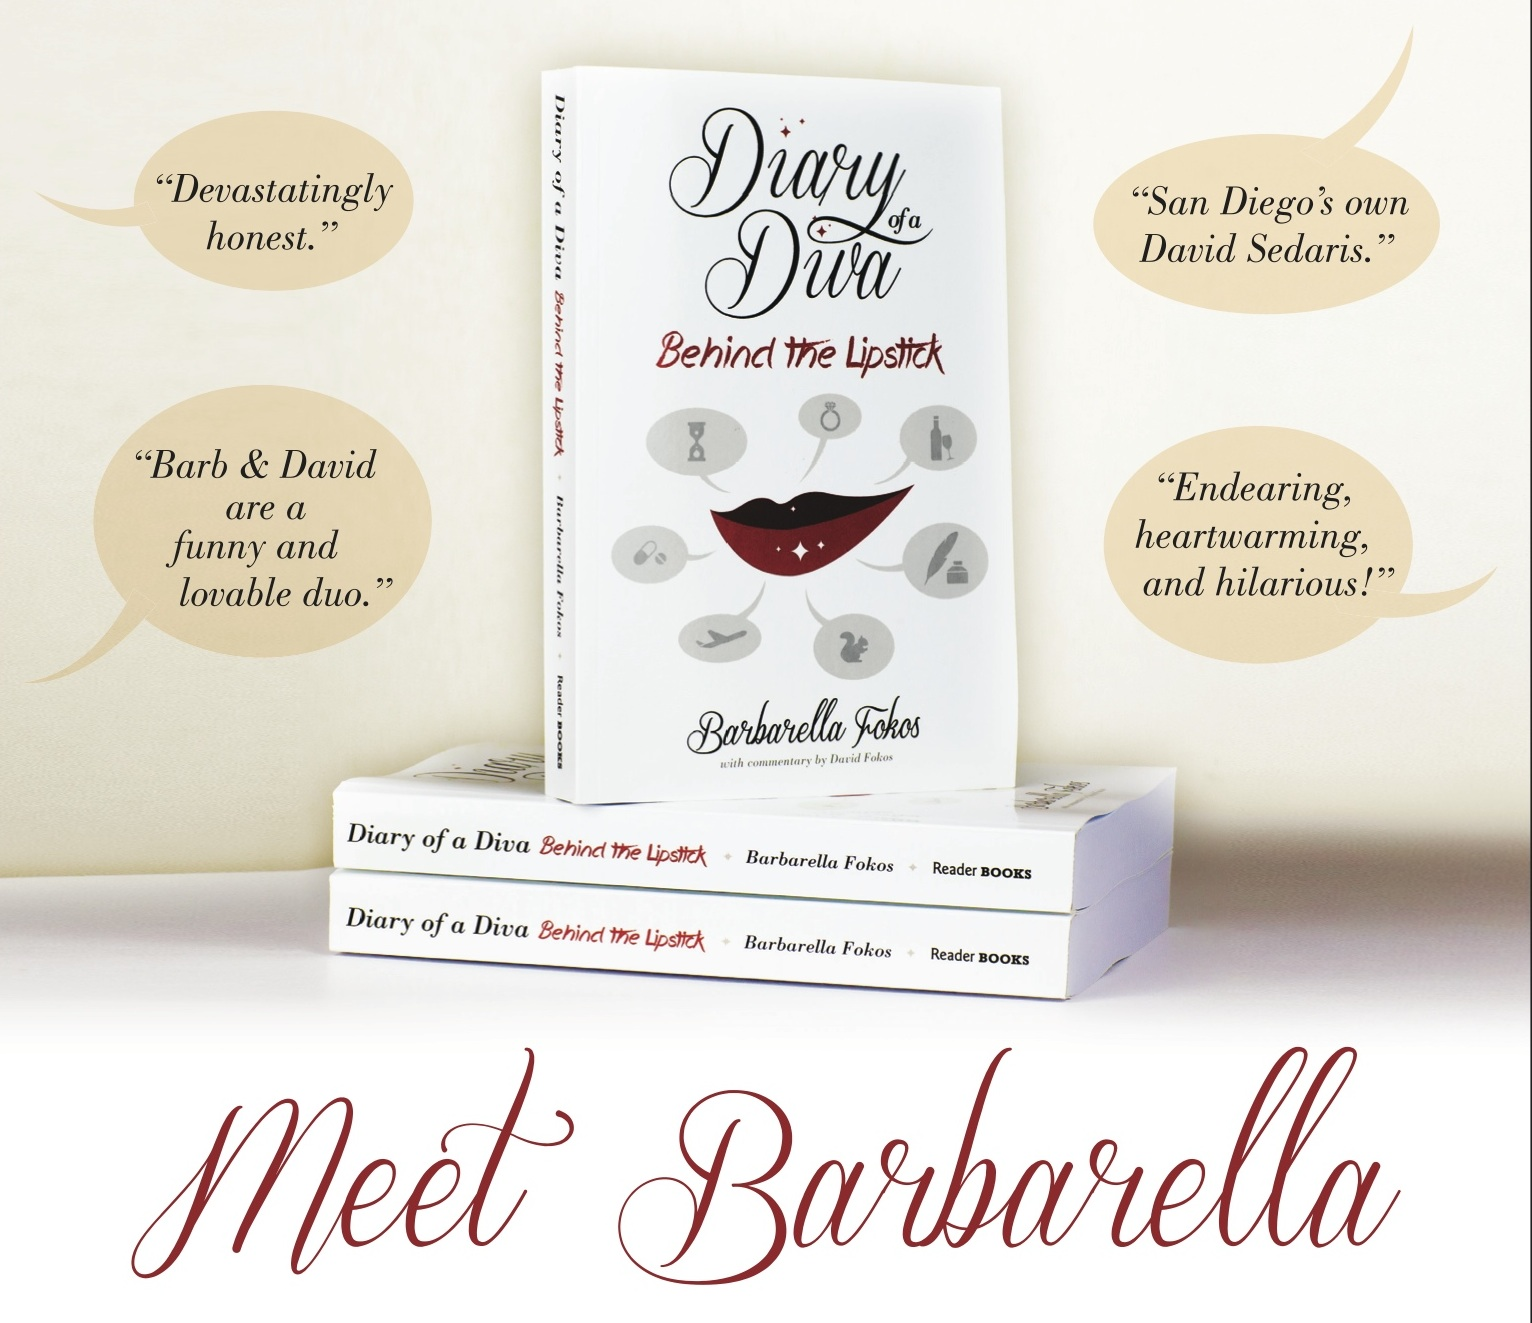 Can't make the party but still want a signed copy of the book? Go to  sdreader.com/diva.